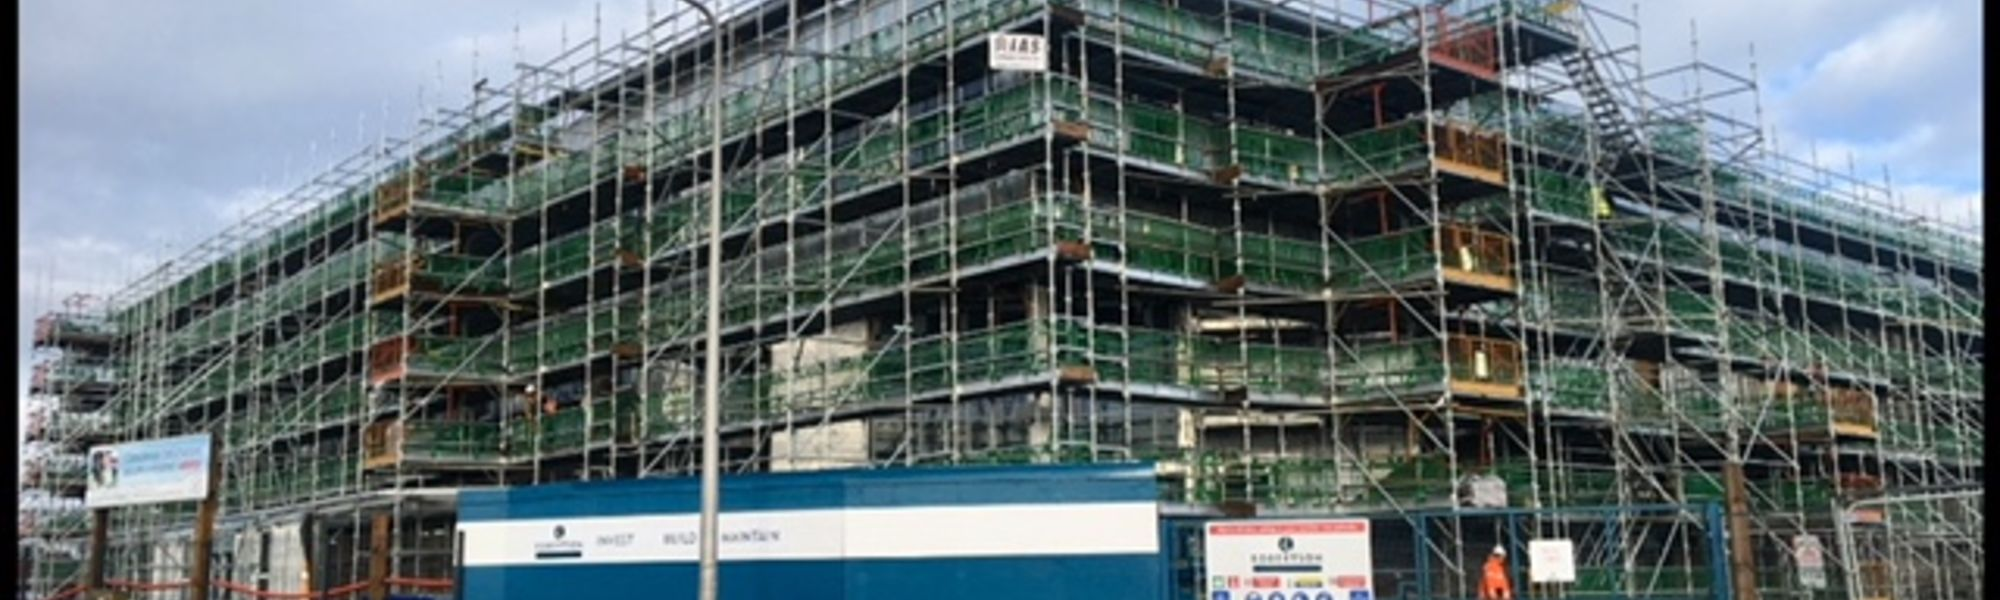 IAS Scaffolding Services in Dundee, Scotland